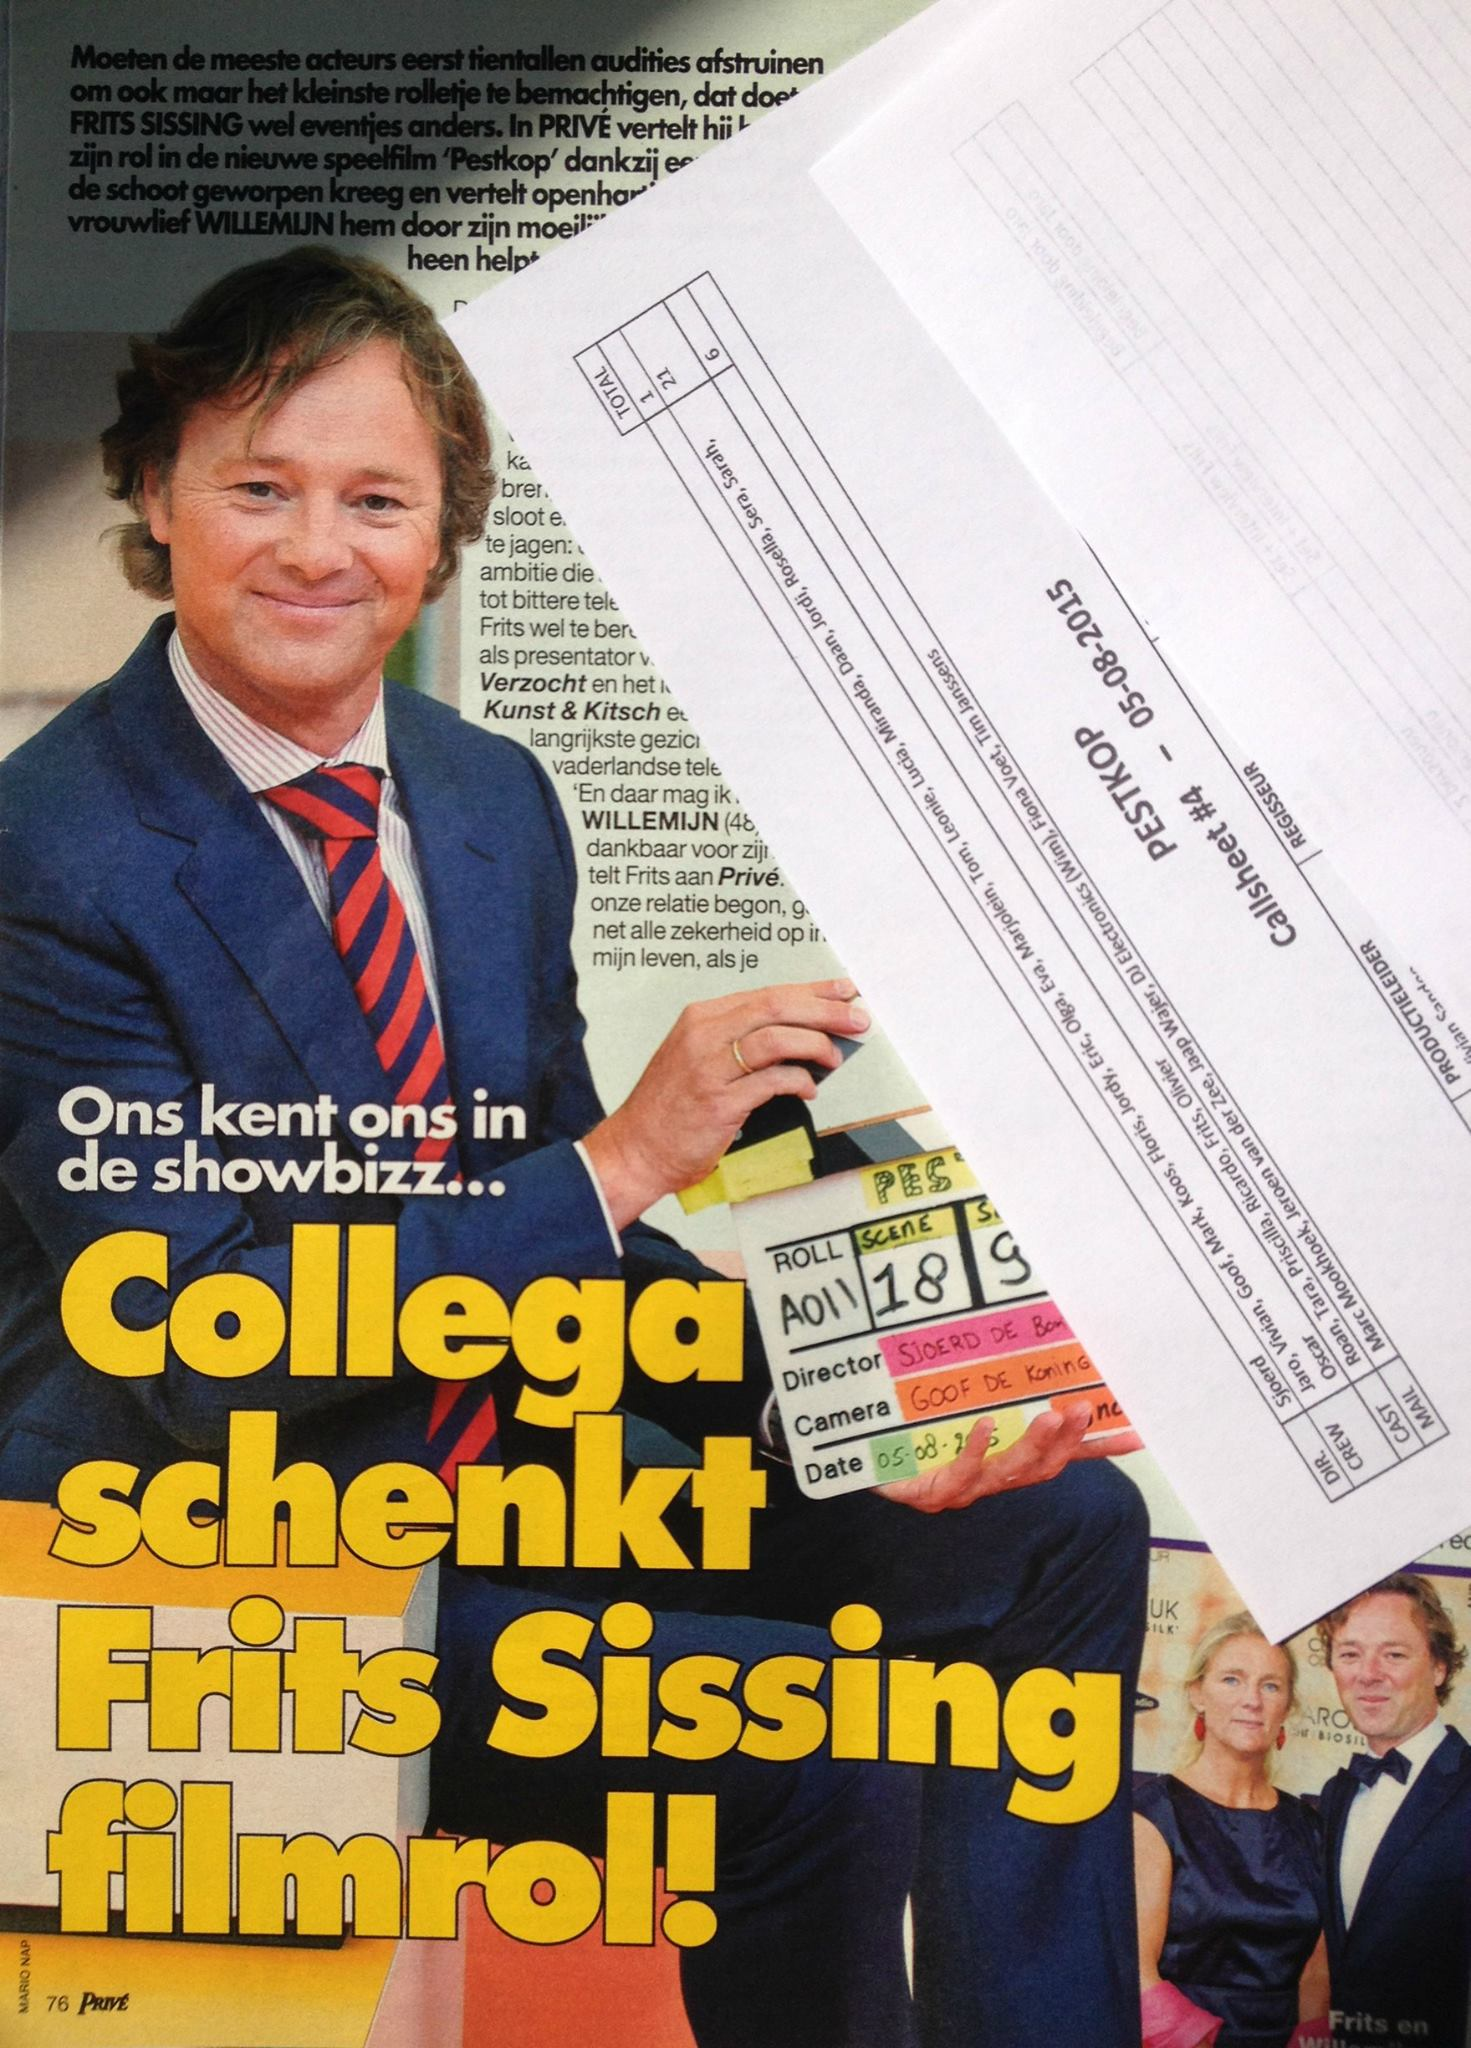 frits sissing